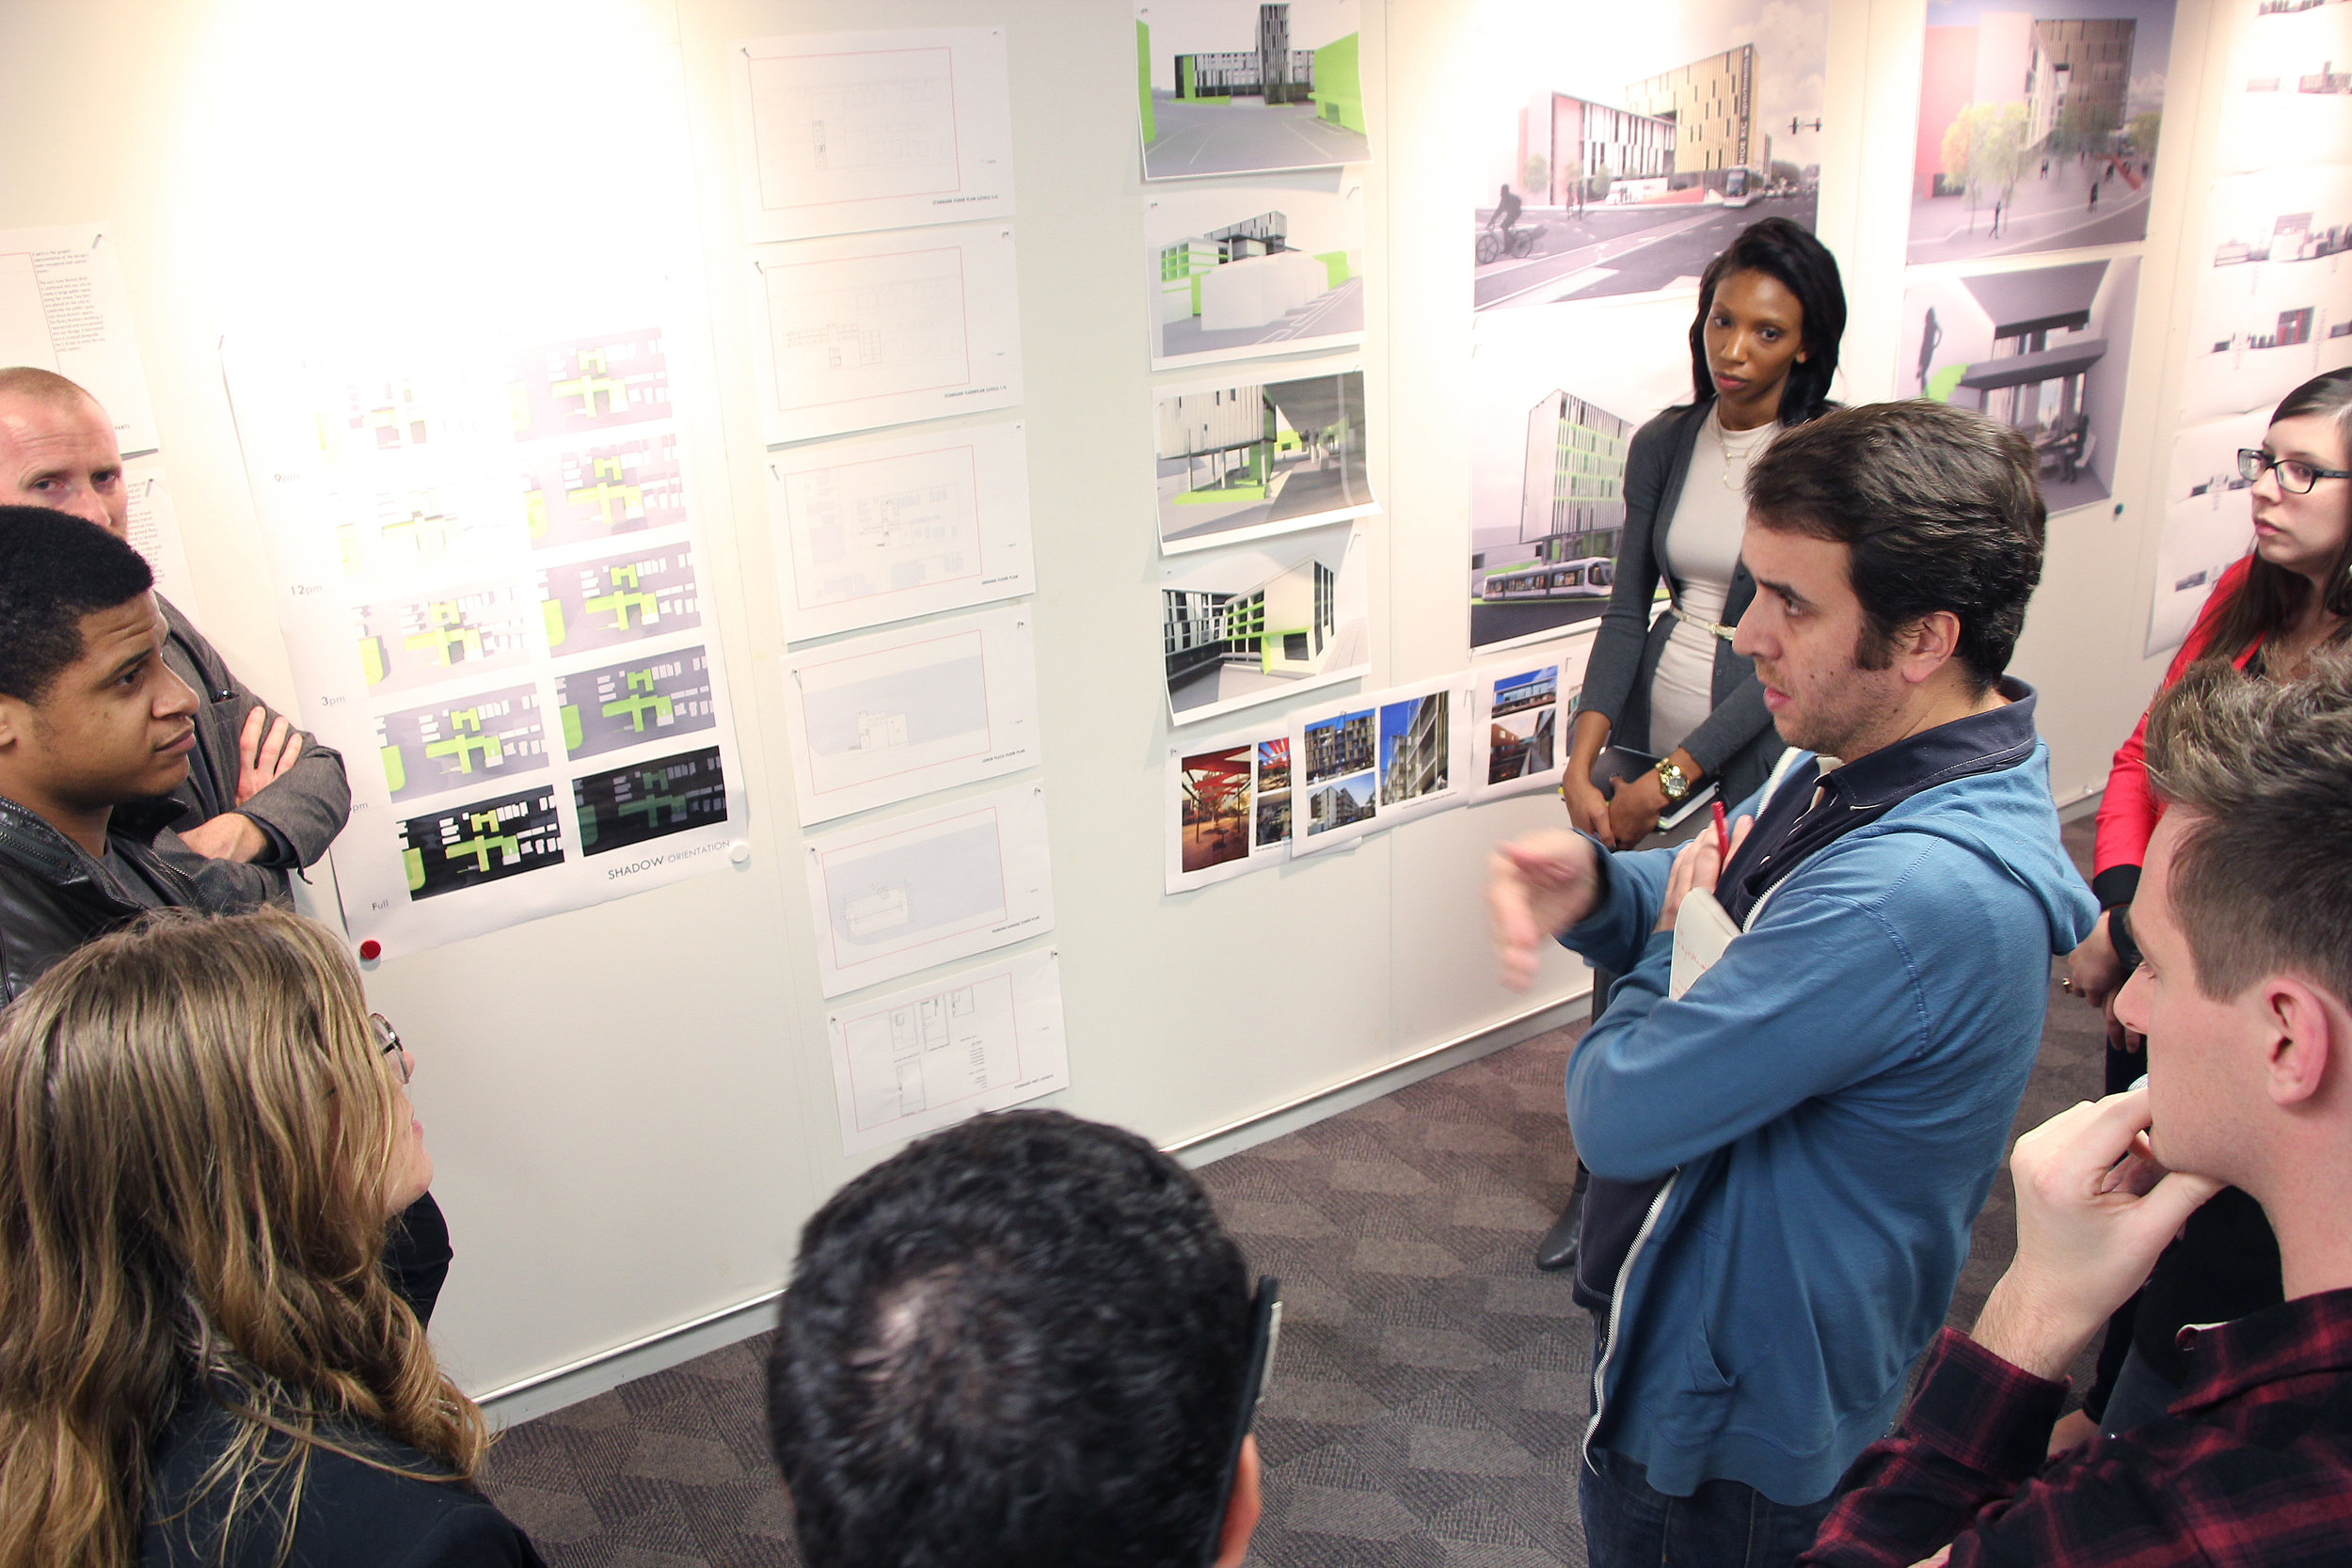 Critiques are helpful not only for the students who designed the project, but also for students who are not designing the project, as they can learn about successful moves and areas of improvement that may be indirectly relevant to their current or future designs.